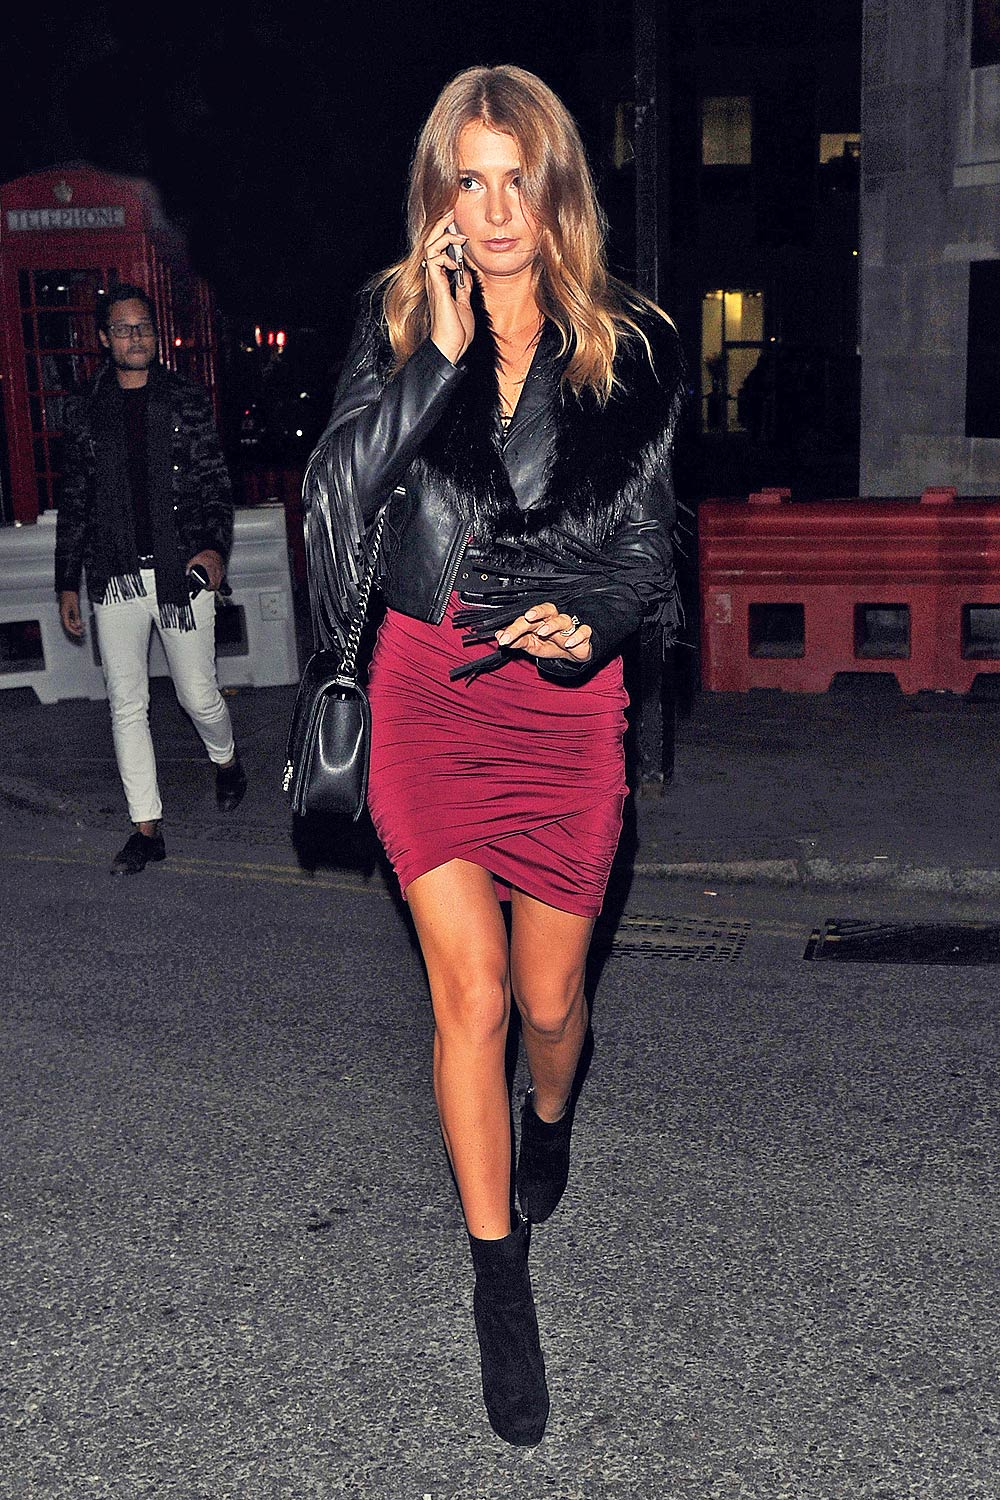 Millie Mackintosh seen leaving Tape nightclub